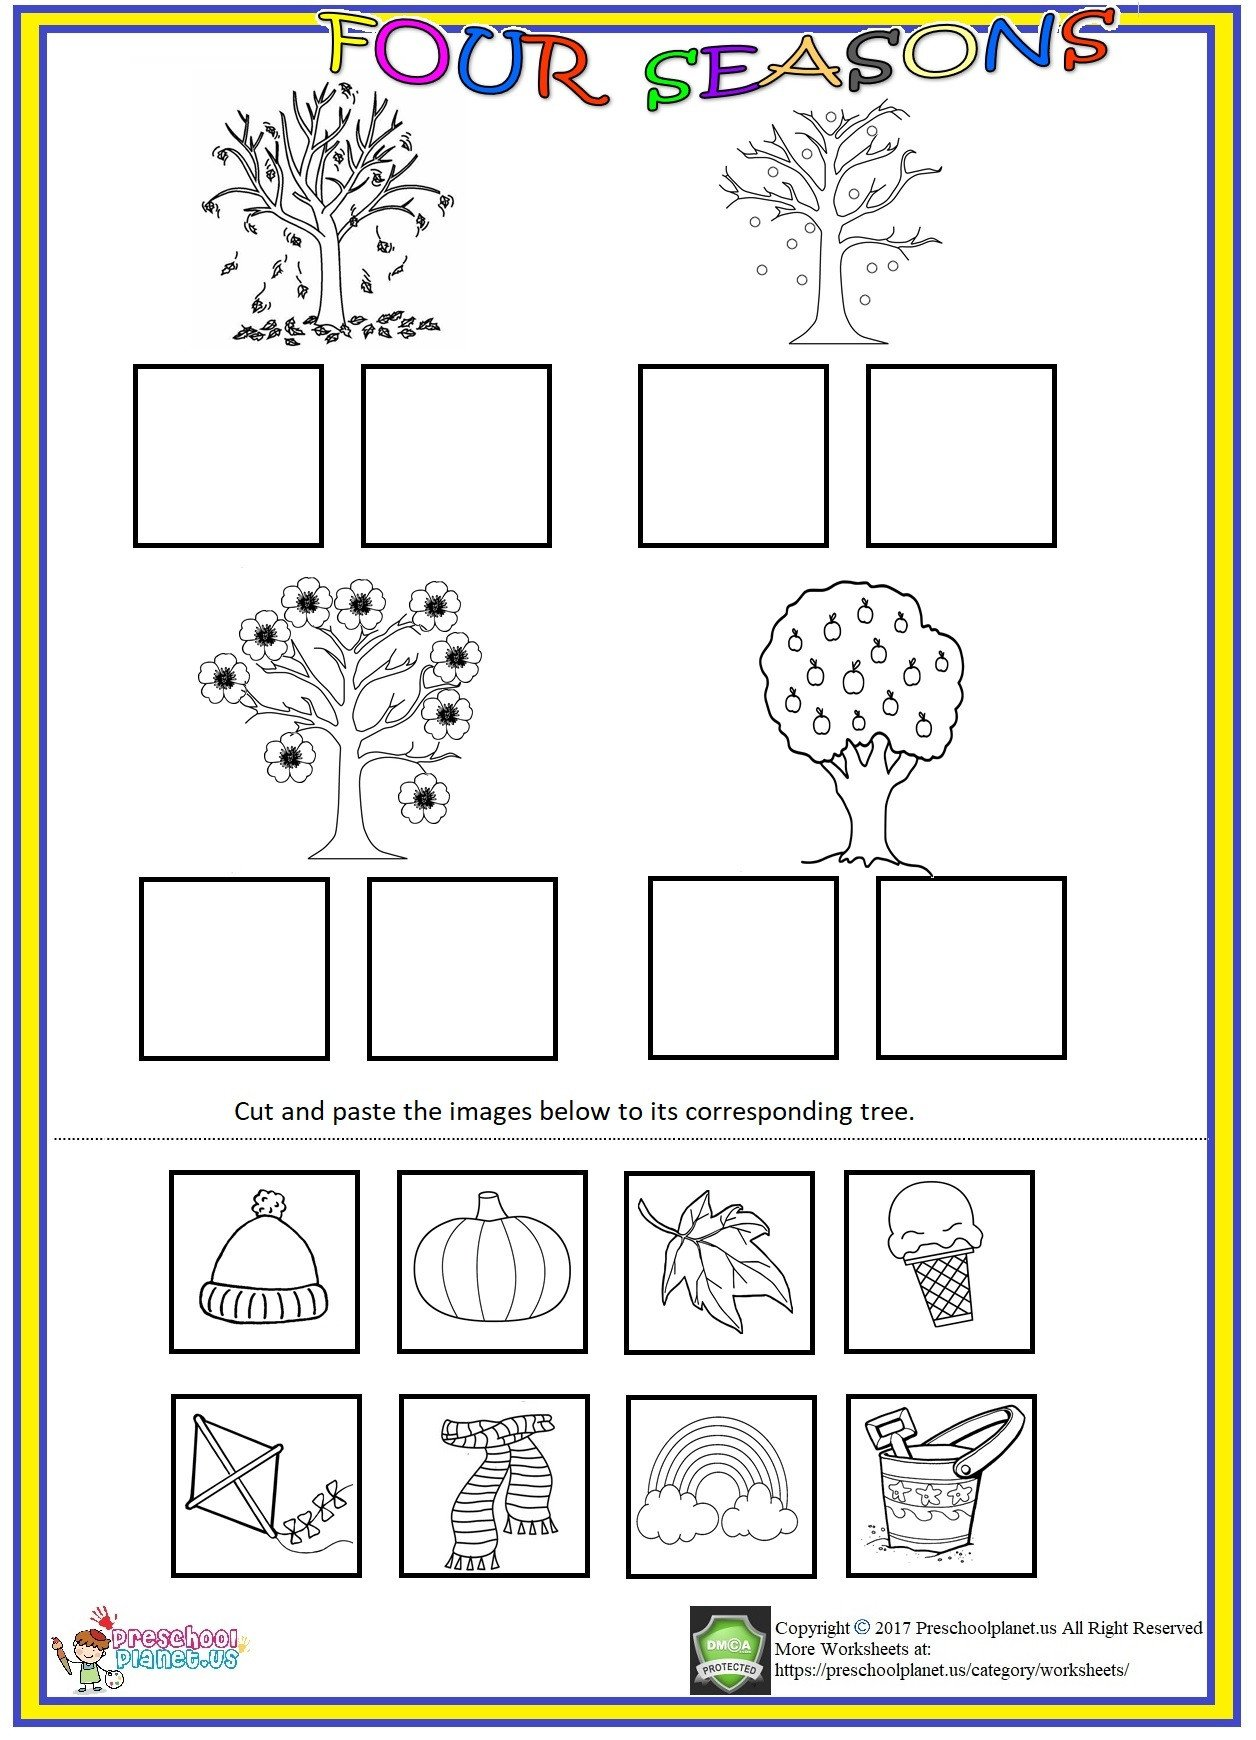 Cut and Paste Sequencing Worksheets Sequencing Worksheet – Preschoolplanet